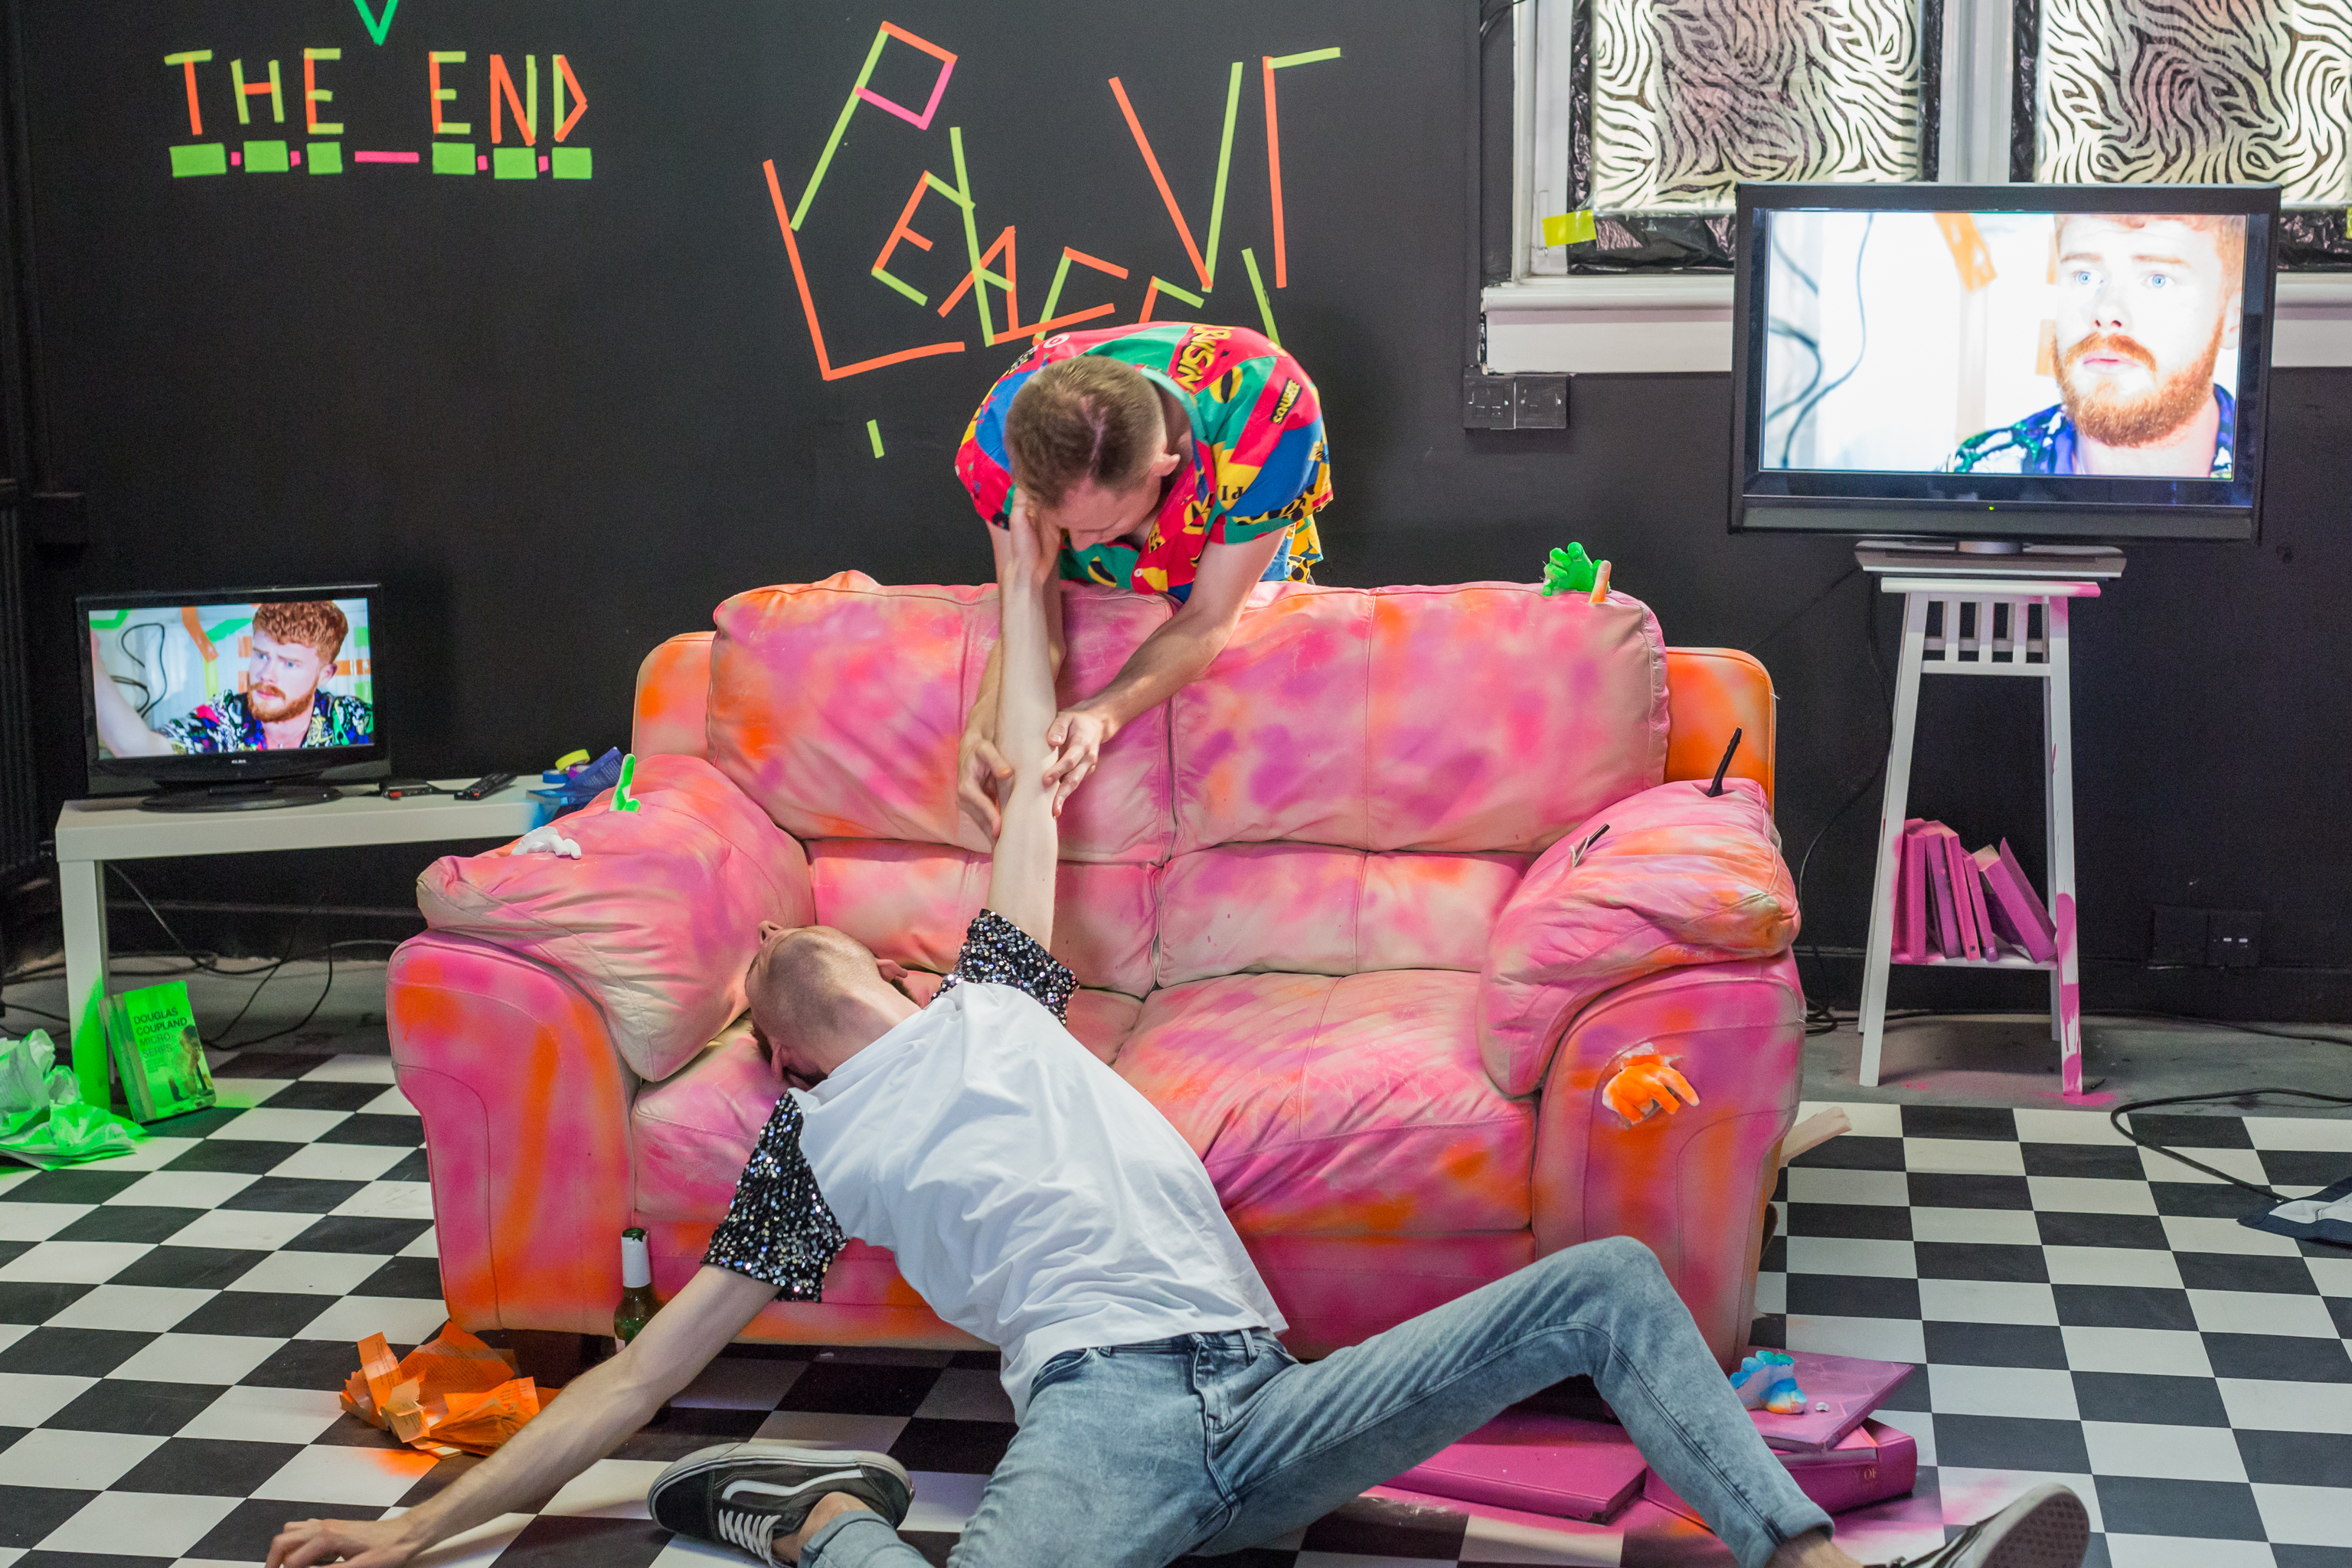 A scene from the show, a young man is sprawled on the floor and another young man leans over a pink sofa pulling up the other man by his arm. The floor is made up of black and white squares. The walls are black and with bright orange and green tape in some parts. In the top left corner, this tape spells out 'the end'. There are two small screens on either side of the sofa, both show a different close up of a young man with ginger hair.